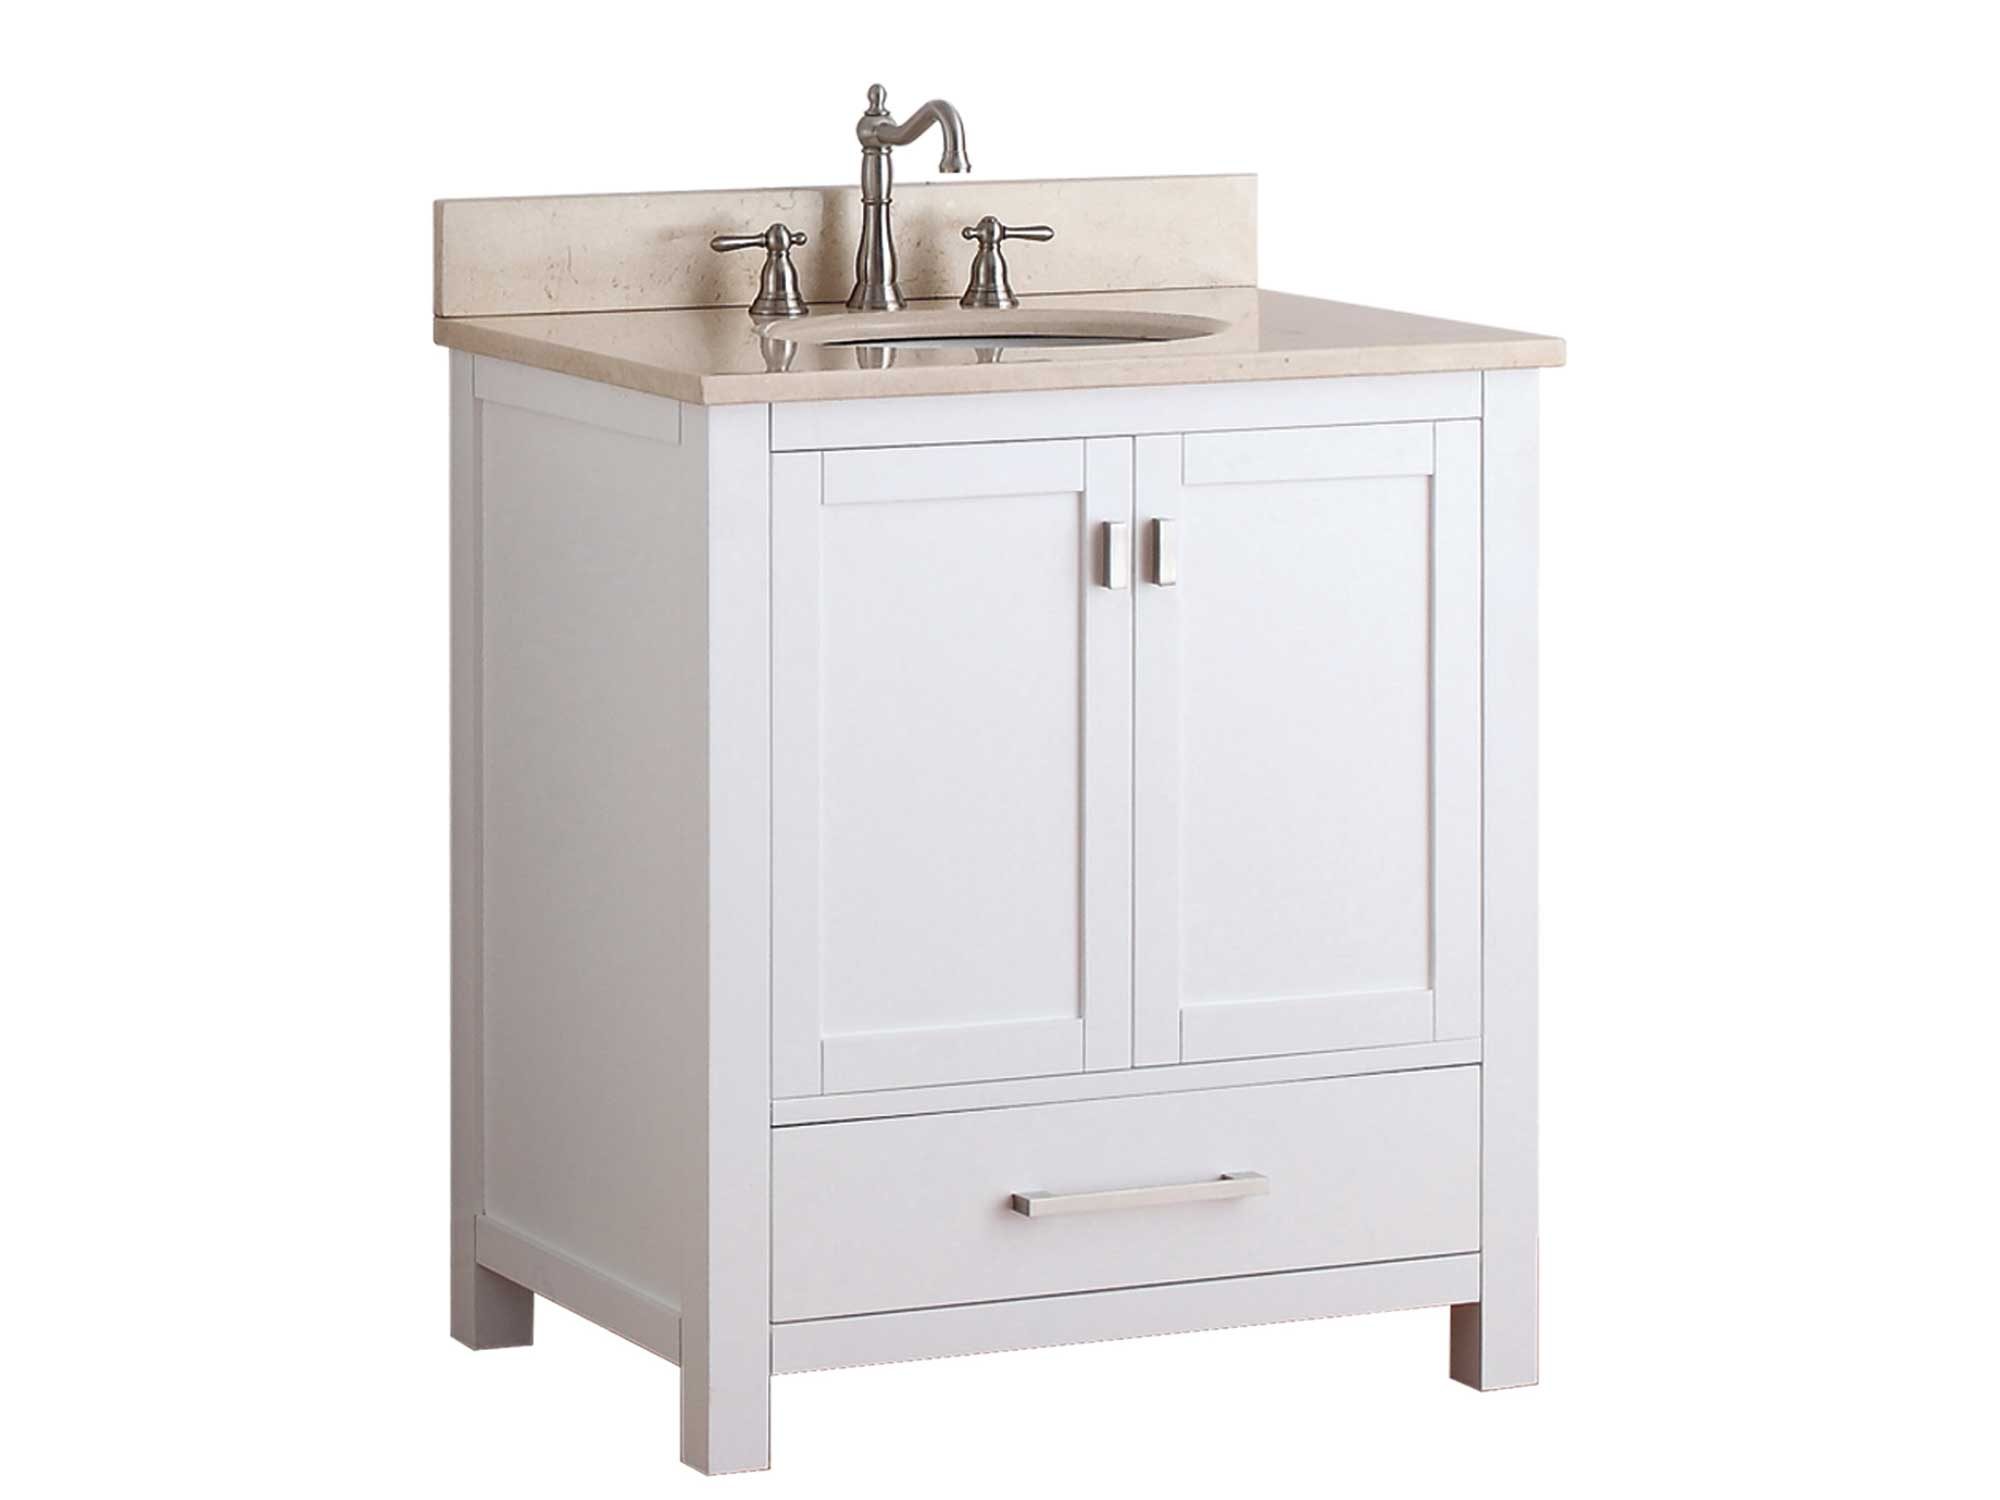 "31"" Toscana Single Bath Vanity - White with Galala Beige Marble Top"